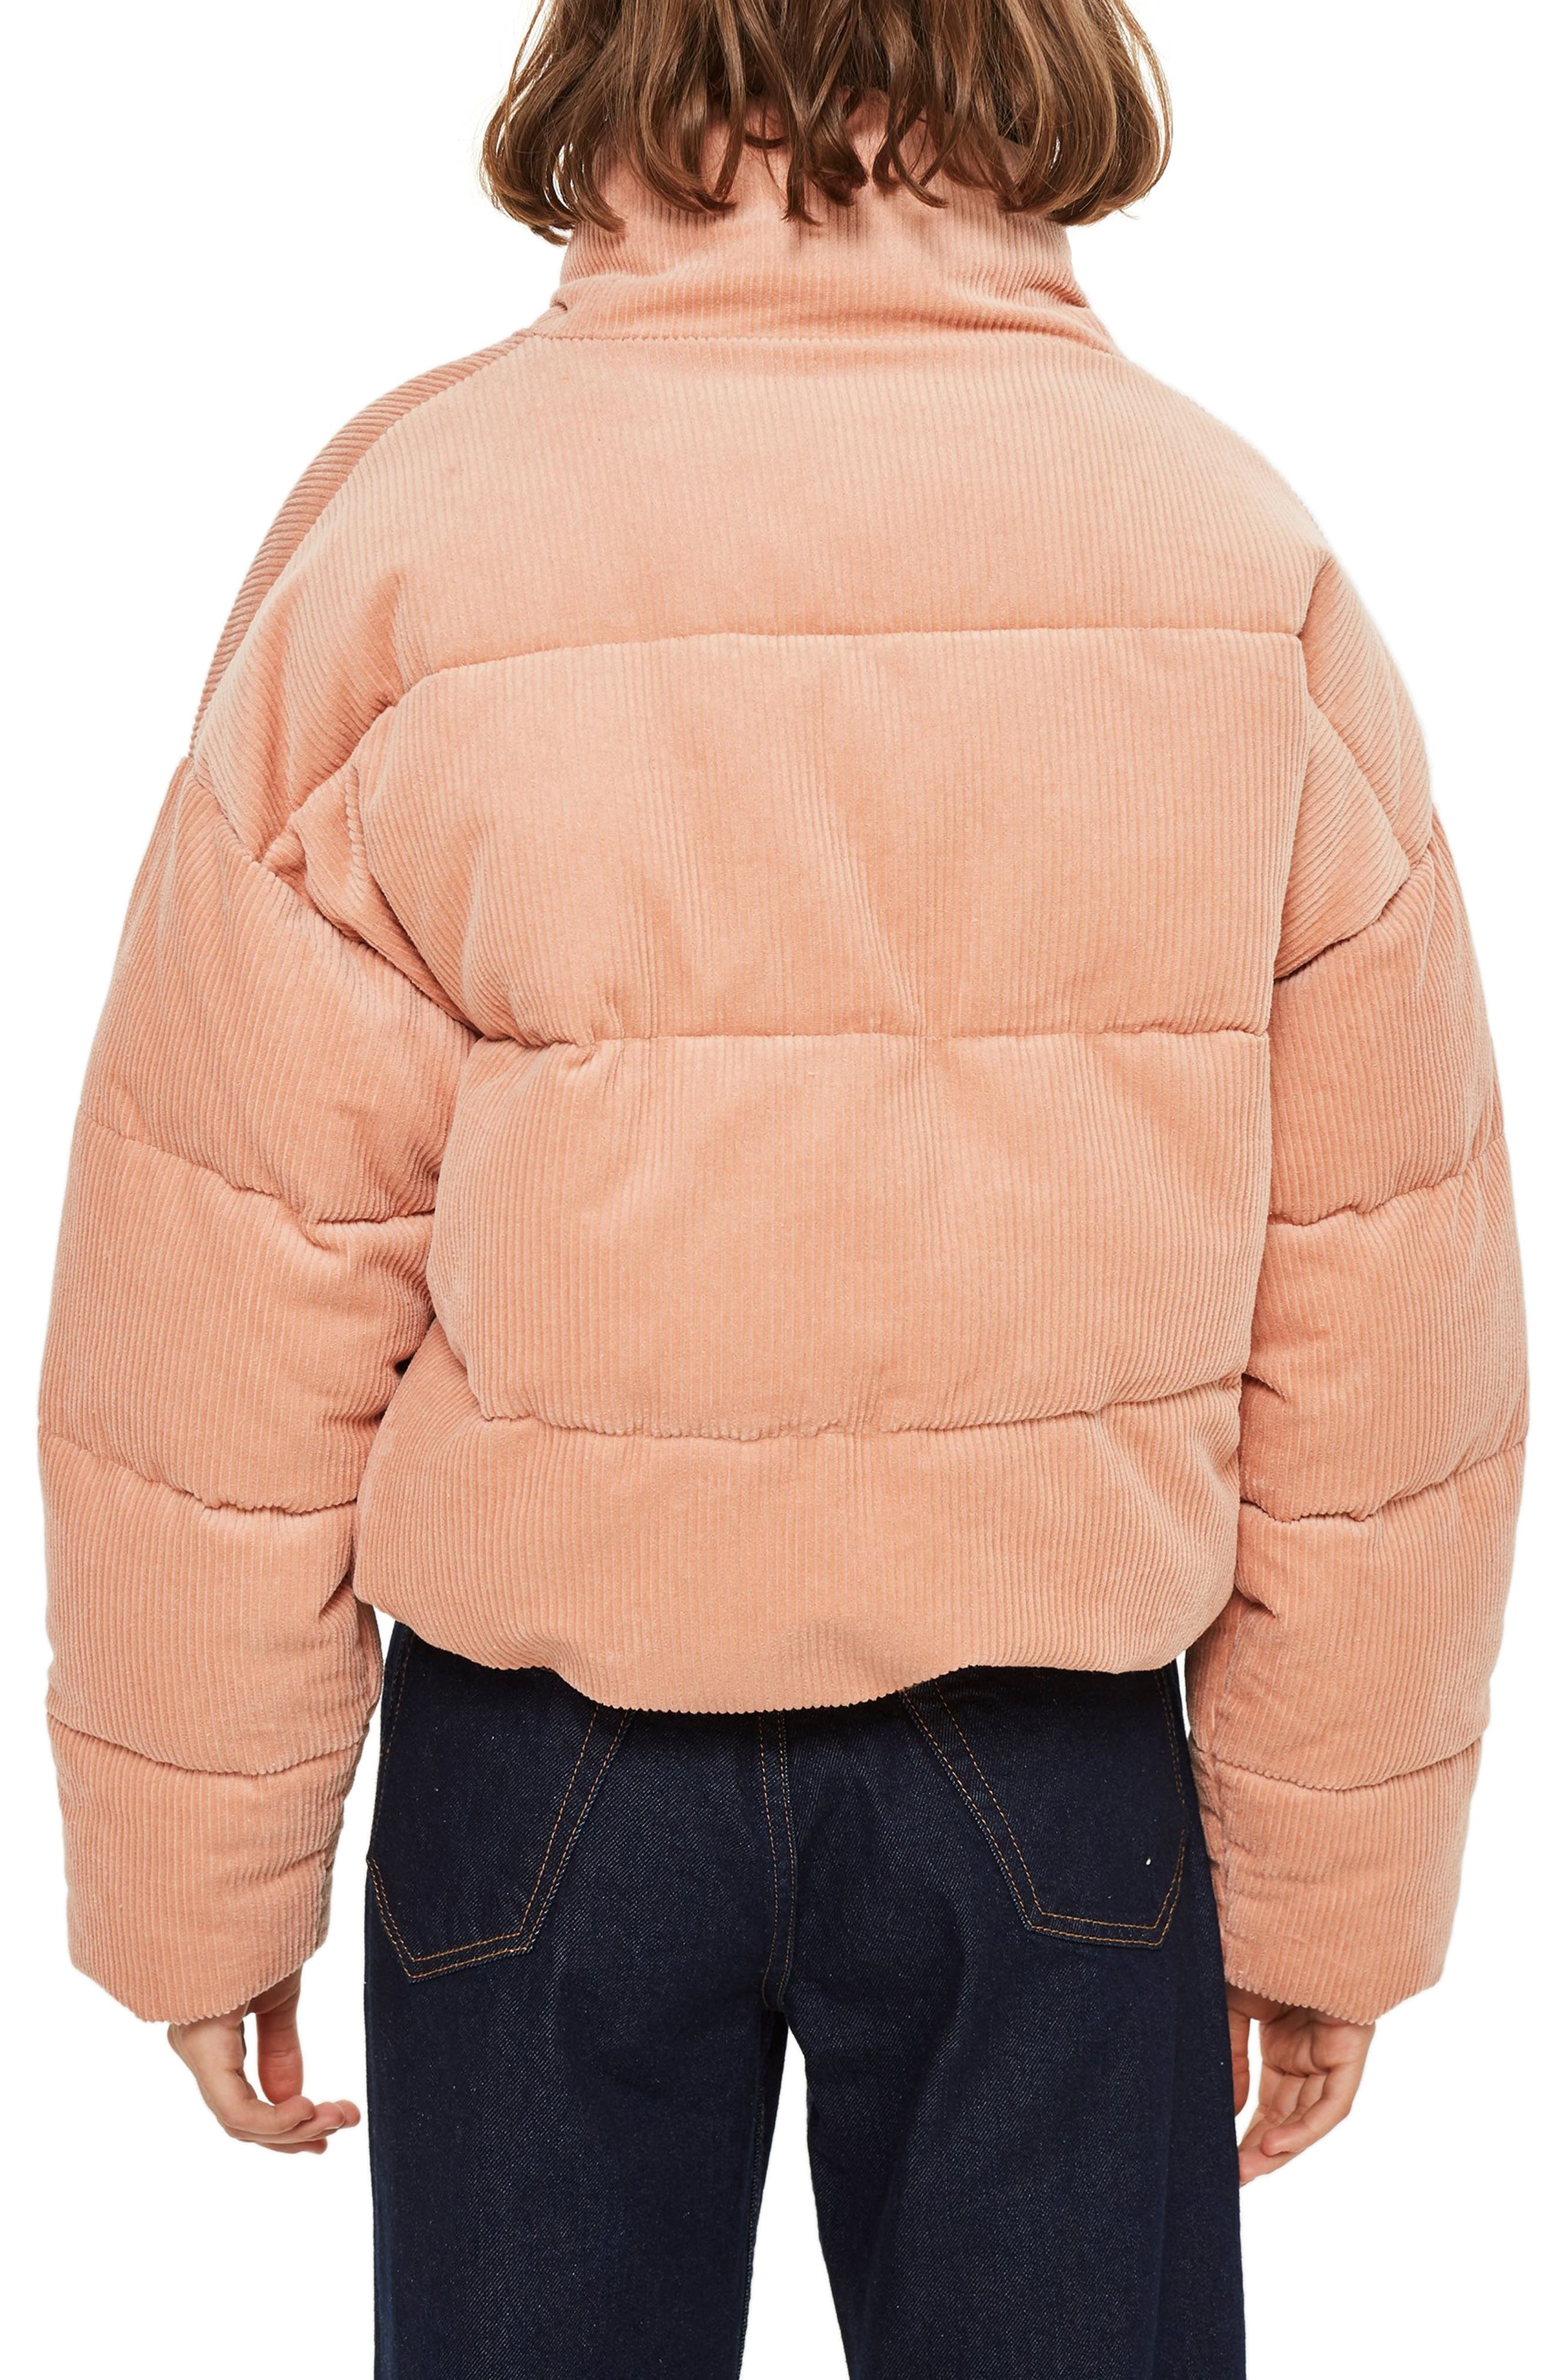 Corduroy Puffer Jacket,                             Alternate thumbnail 2, color,                             650